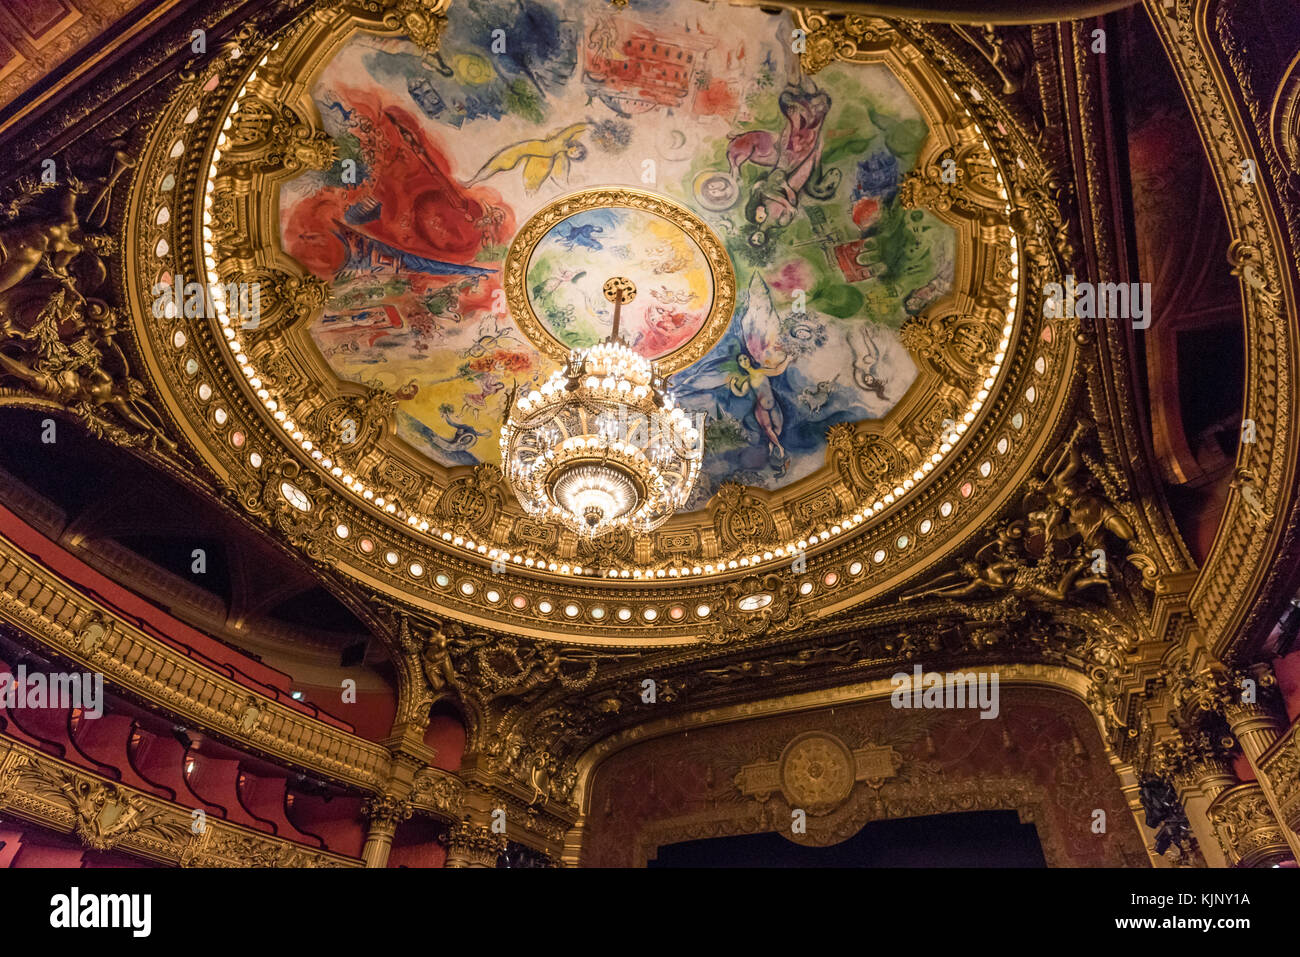 The ceiling and chandelier of the auditorium inside Palais Garnier, Paris - Stock Image